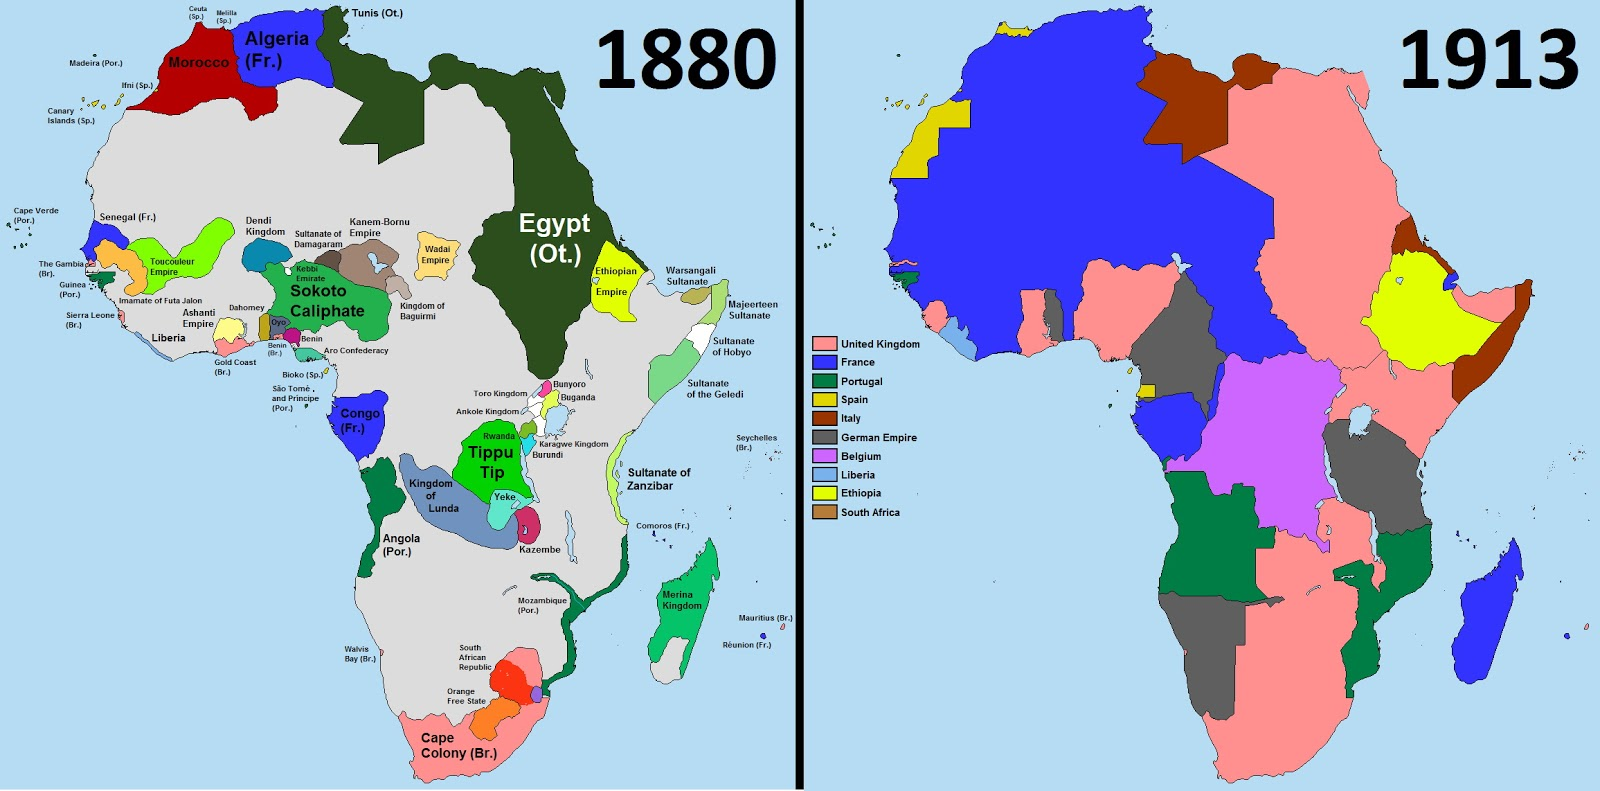 Africa in 1880 and in 1913